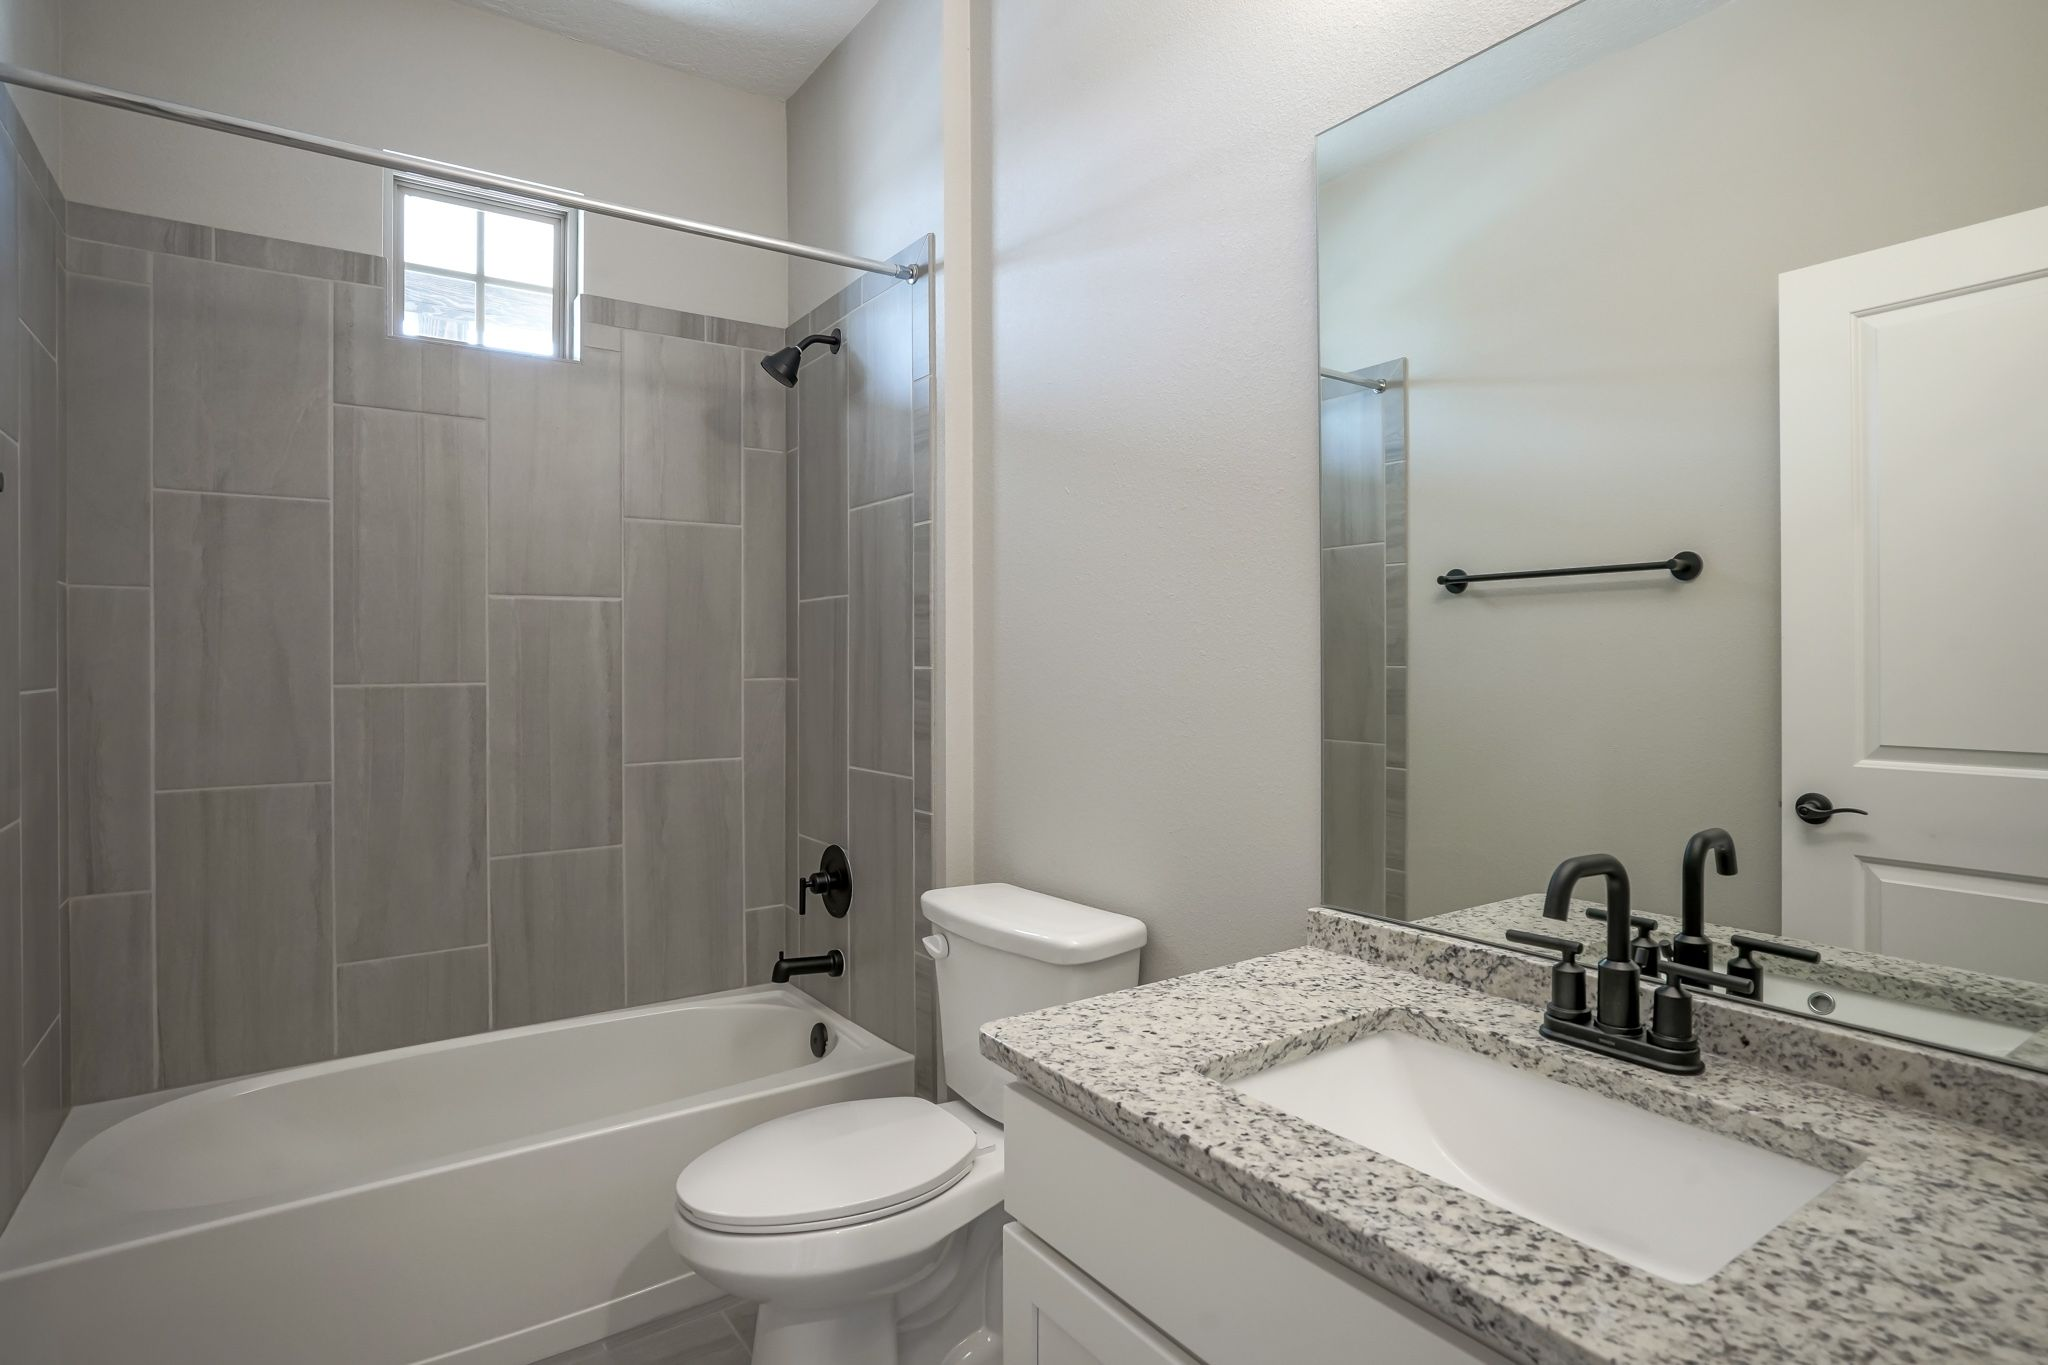 Bathroom featured in The Pilsner By Abrazo Homes in Albuquerque, NM